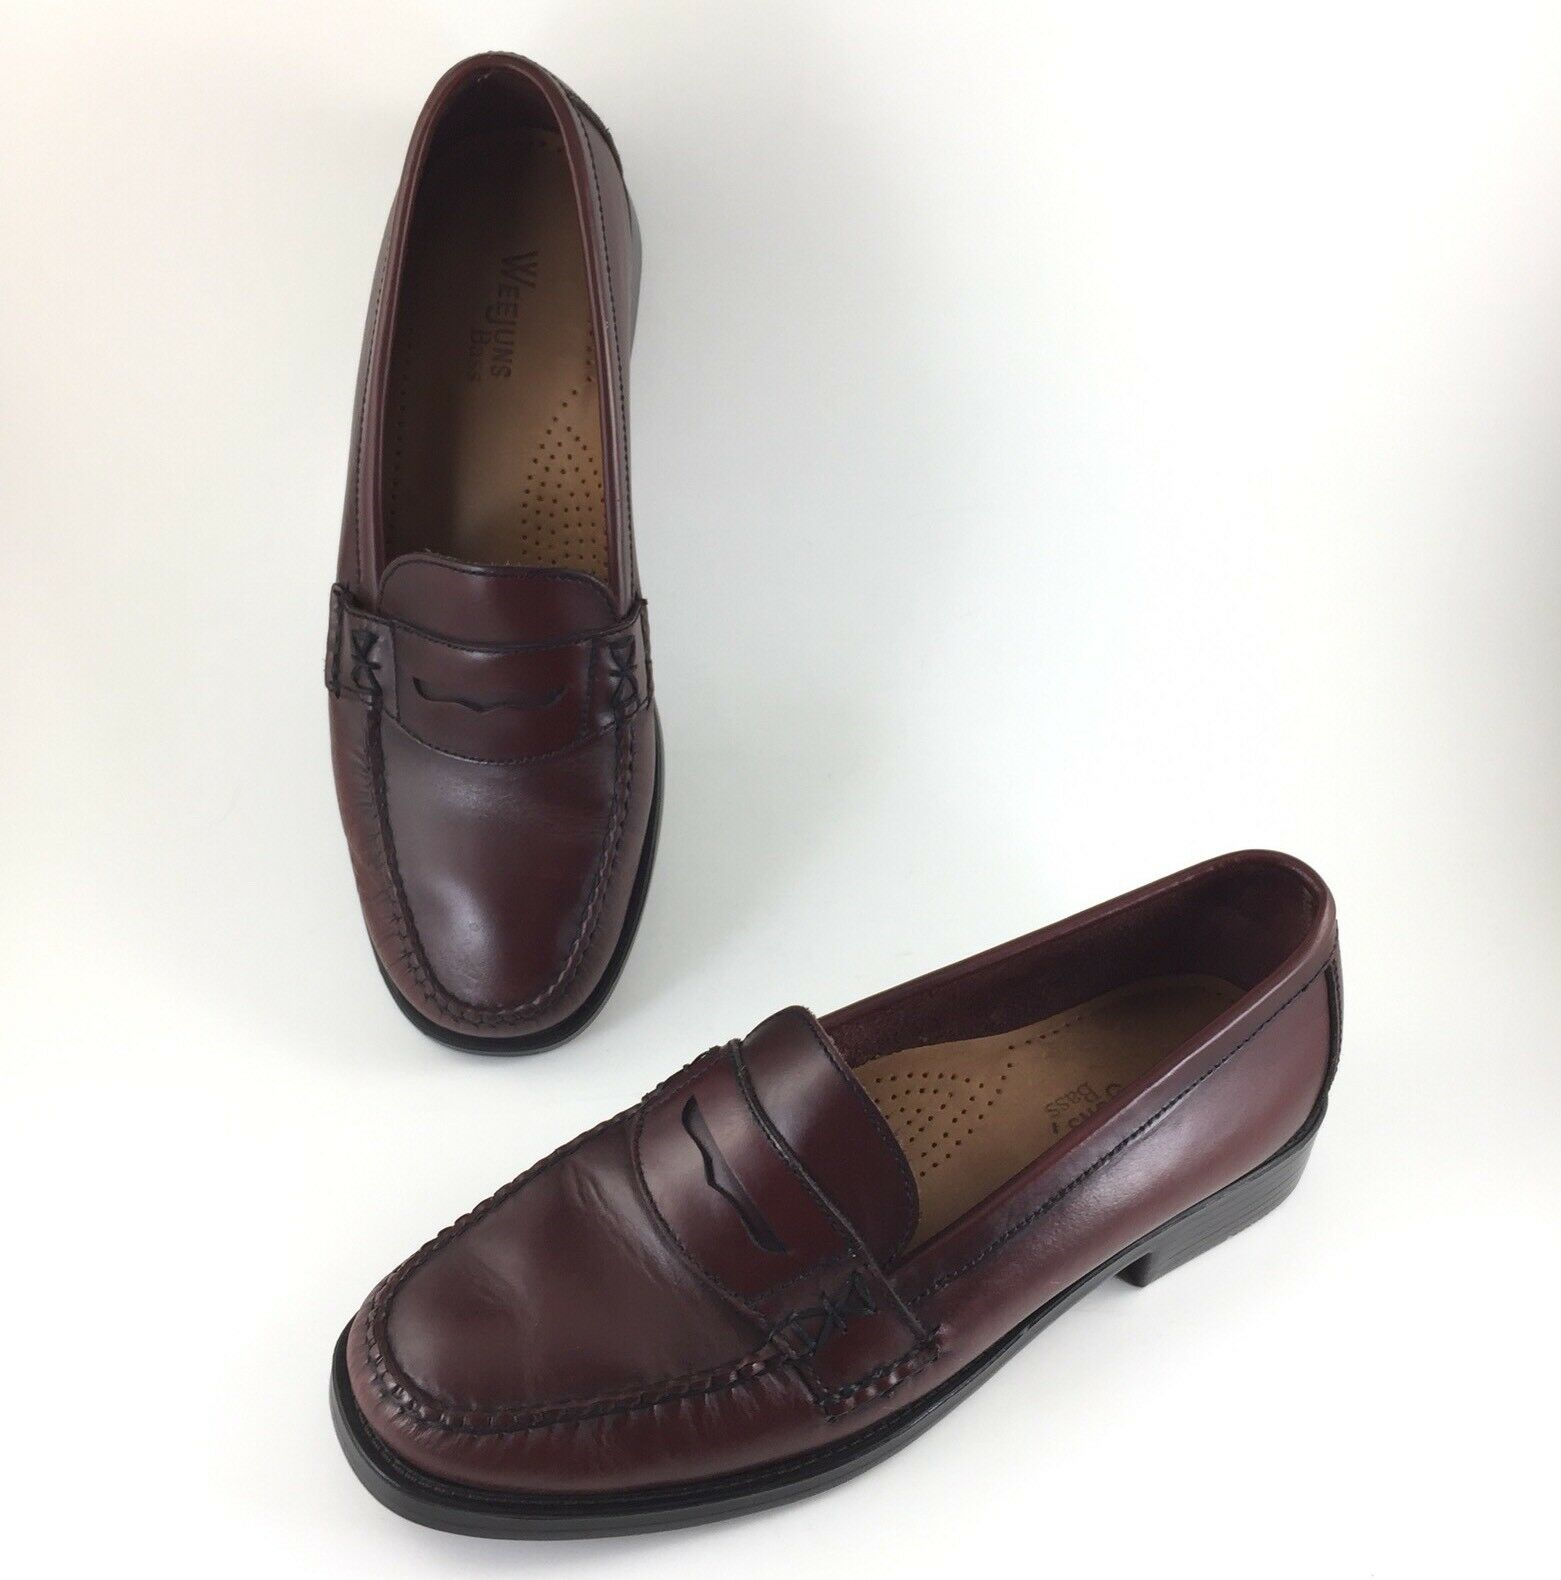 Bass Mens Weejun shoes Penny Loafers Slip On Moc Burgundy Leather Katherine II 2